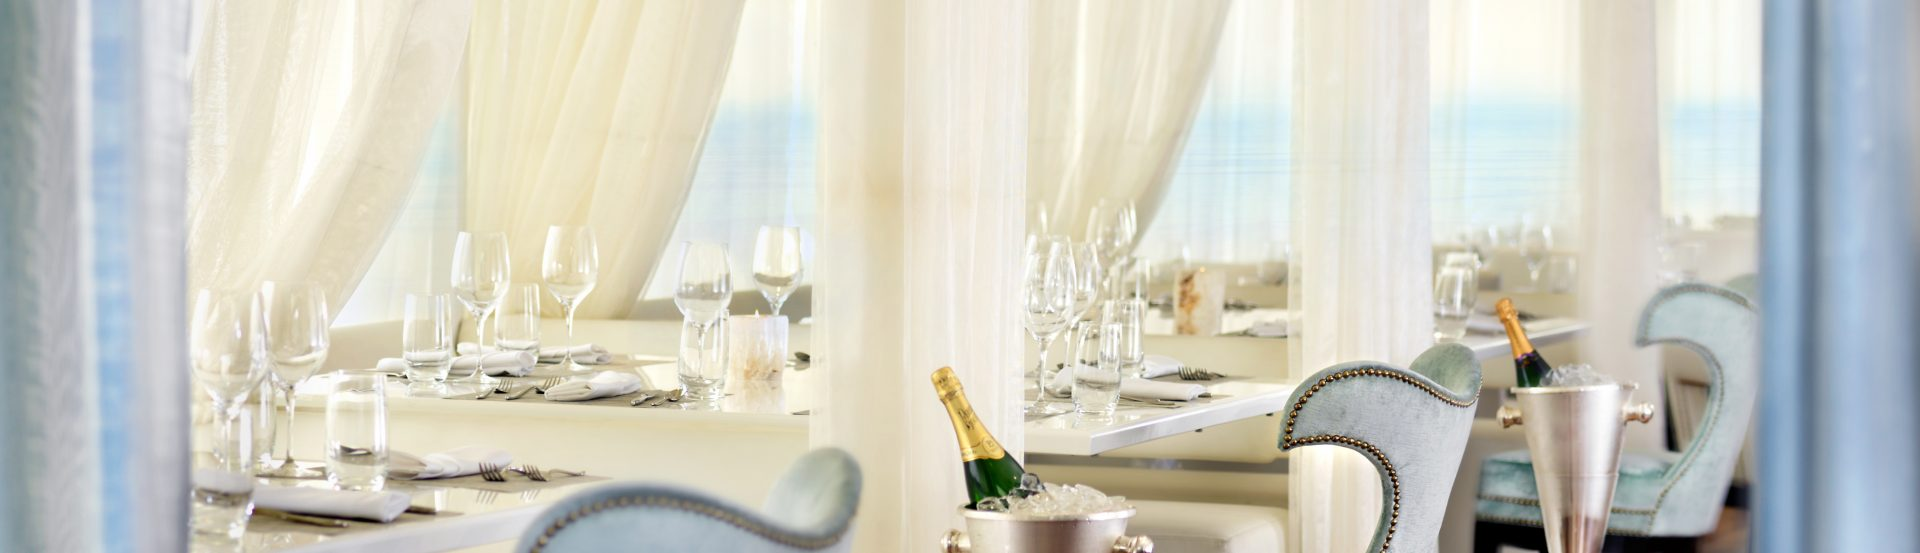 MEETINGS & EVENTS INTIMATE EVENTS IN L.A. WITH OCEAN VIEWS